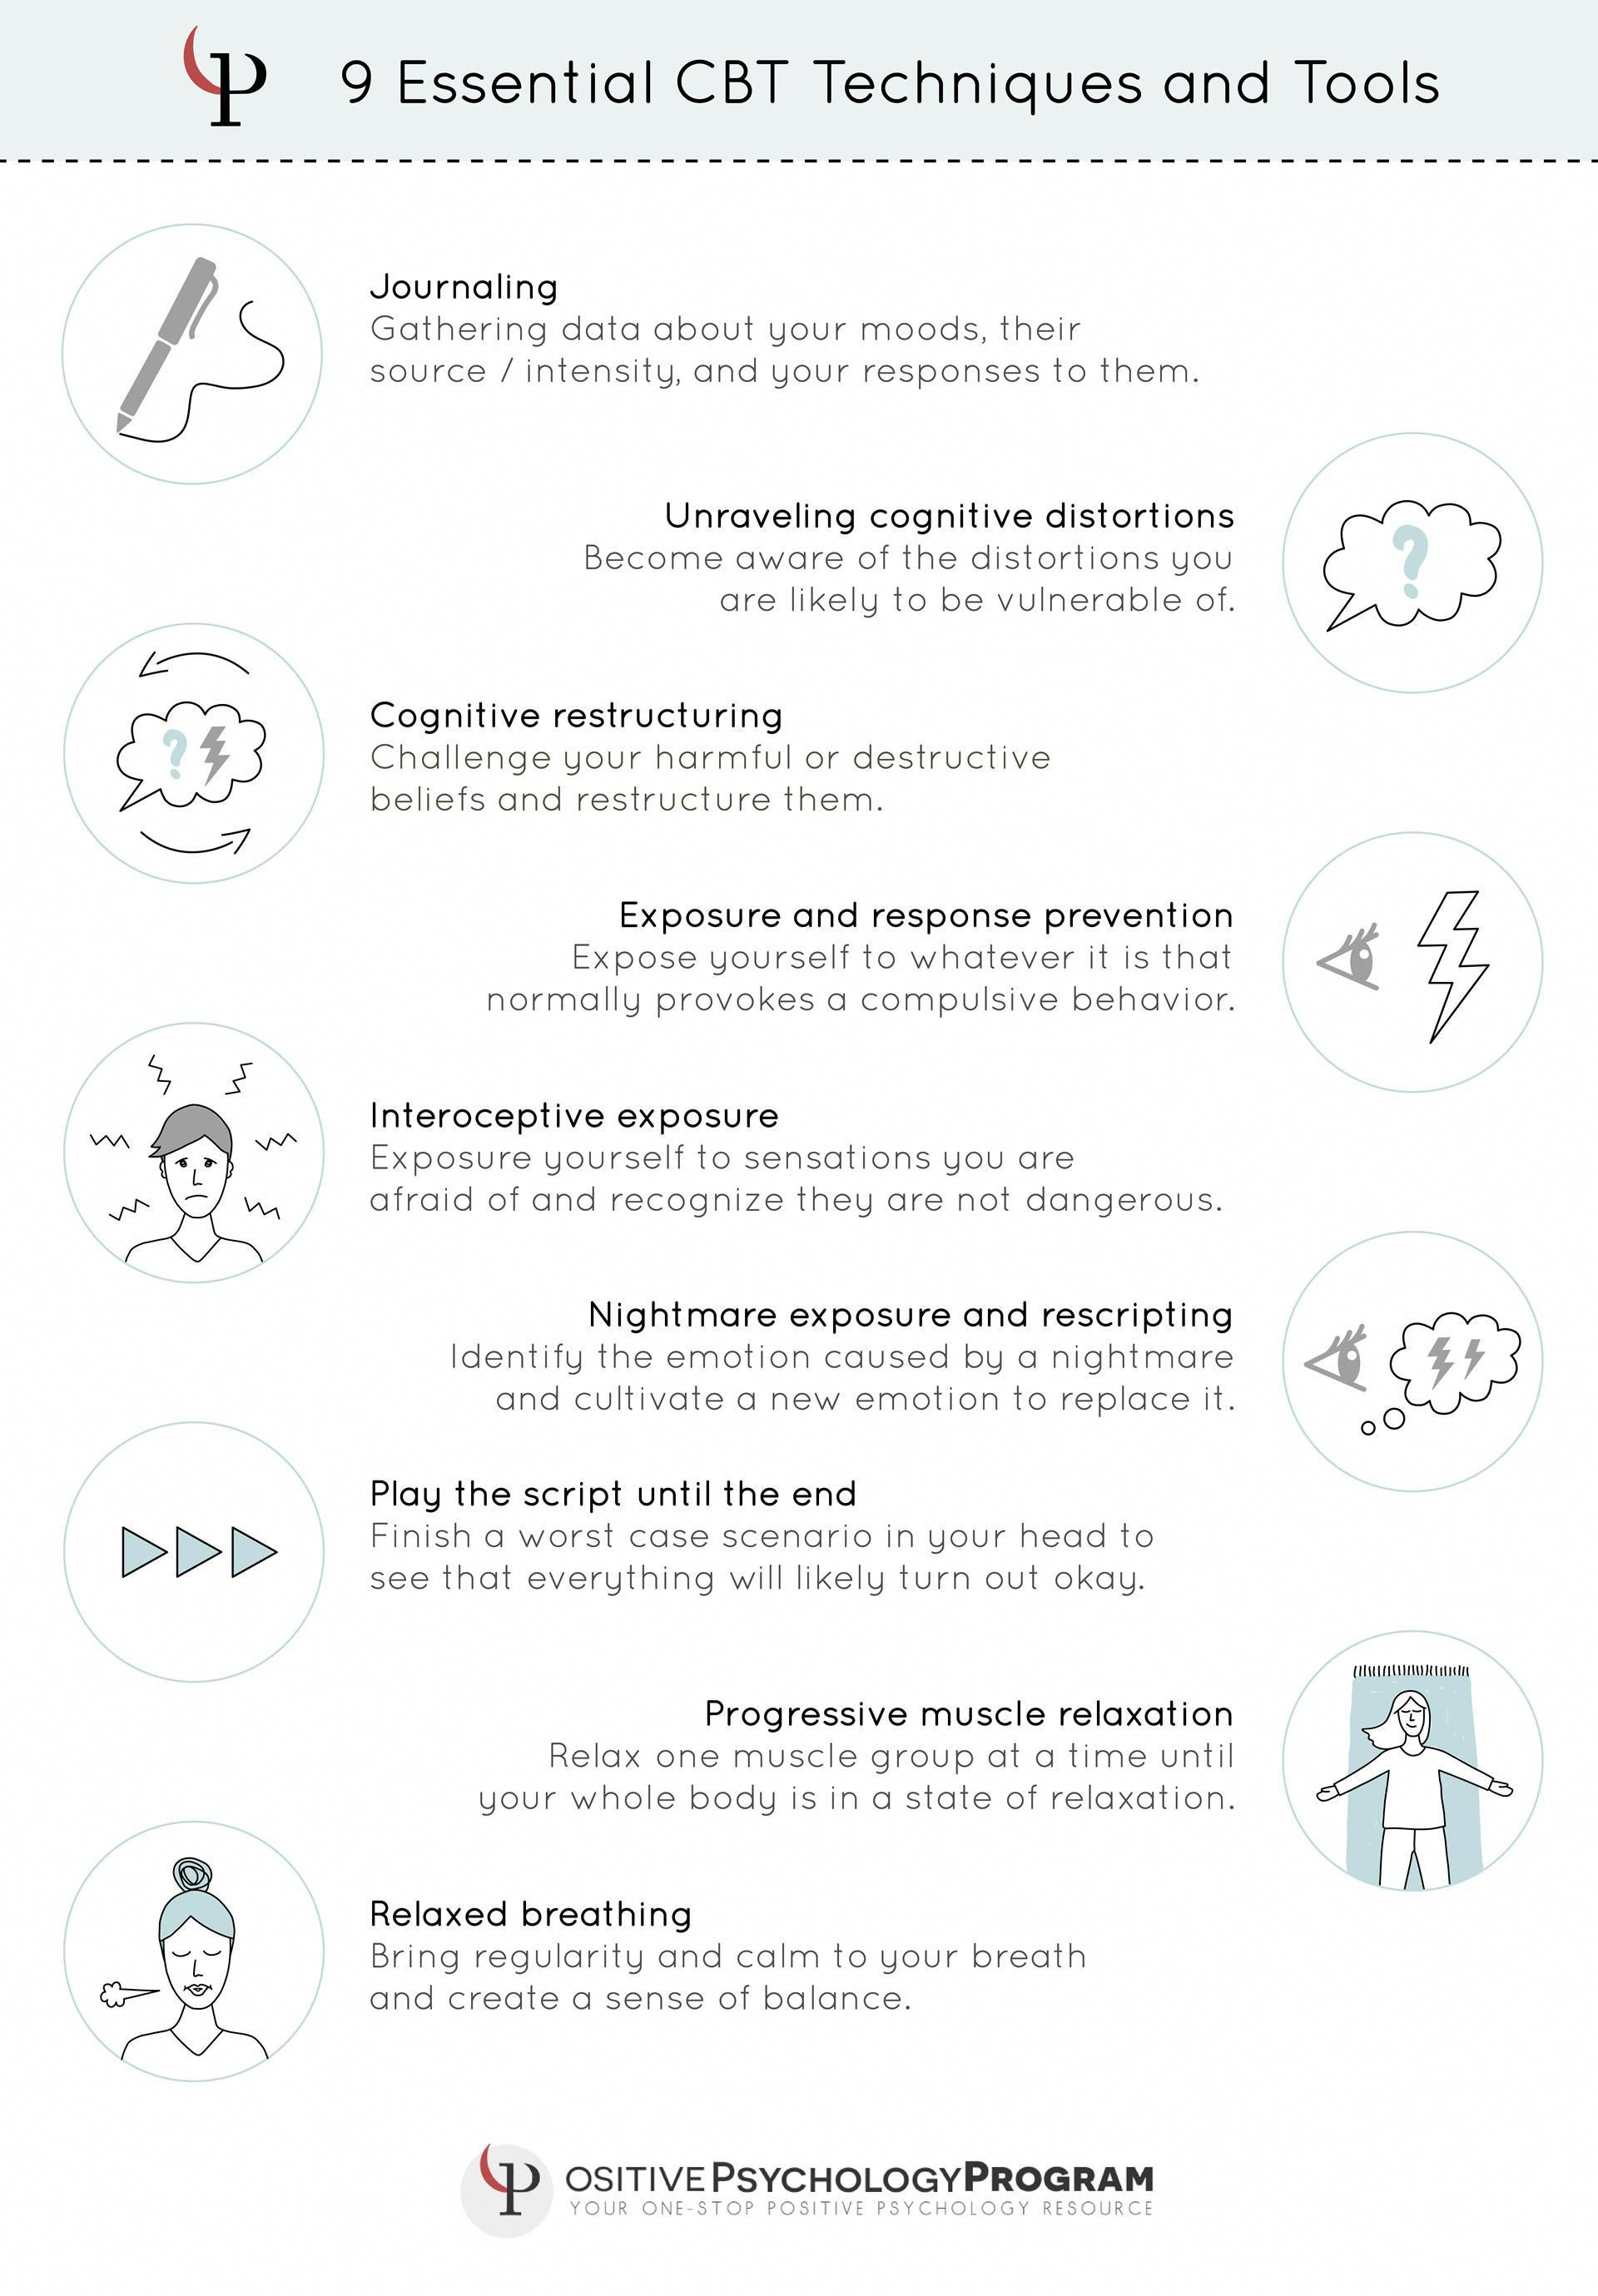 25 Cbt Techniques And Worksheets For Cognitive Behavioral Therapy In 2020 Cbt Therapy Cbt Techniques Cognitive Therapy